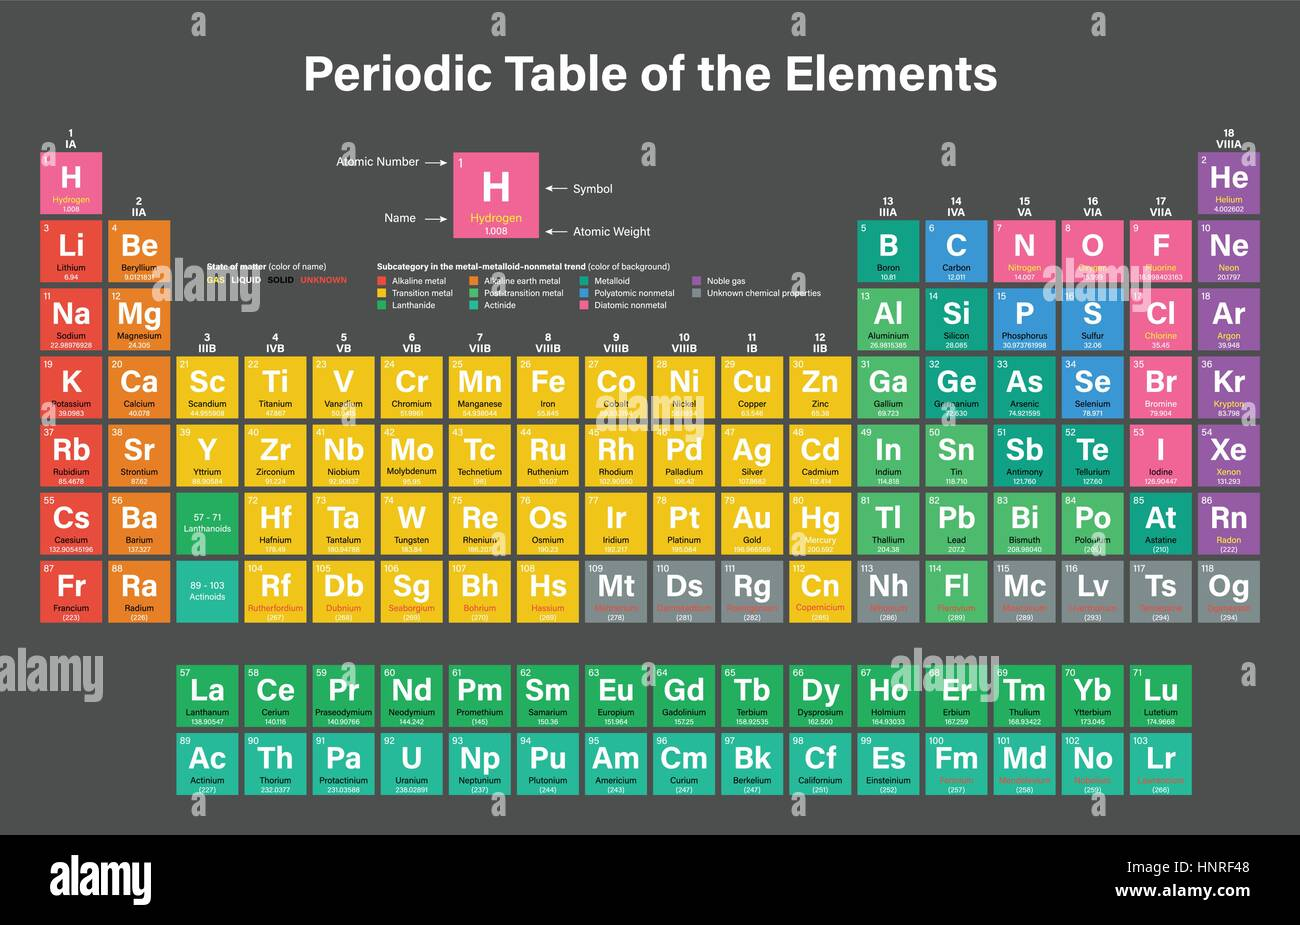 Periodic table elements oxygen stock photos periodic table periodic table of the elements colorful vector illustration including 2016 the four new elements nihonium gamestrikefo Gallery